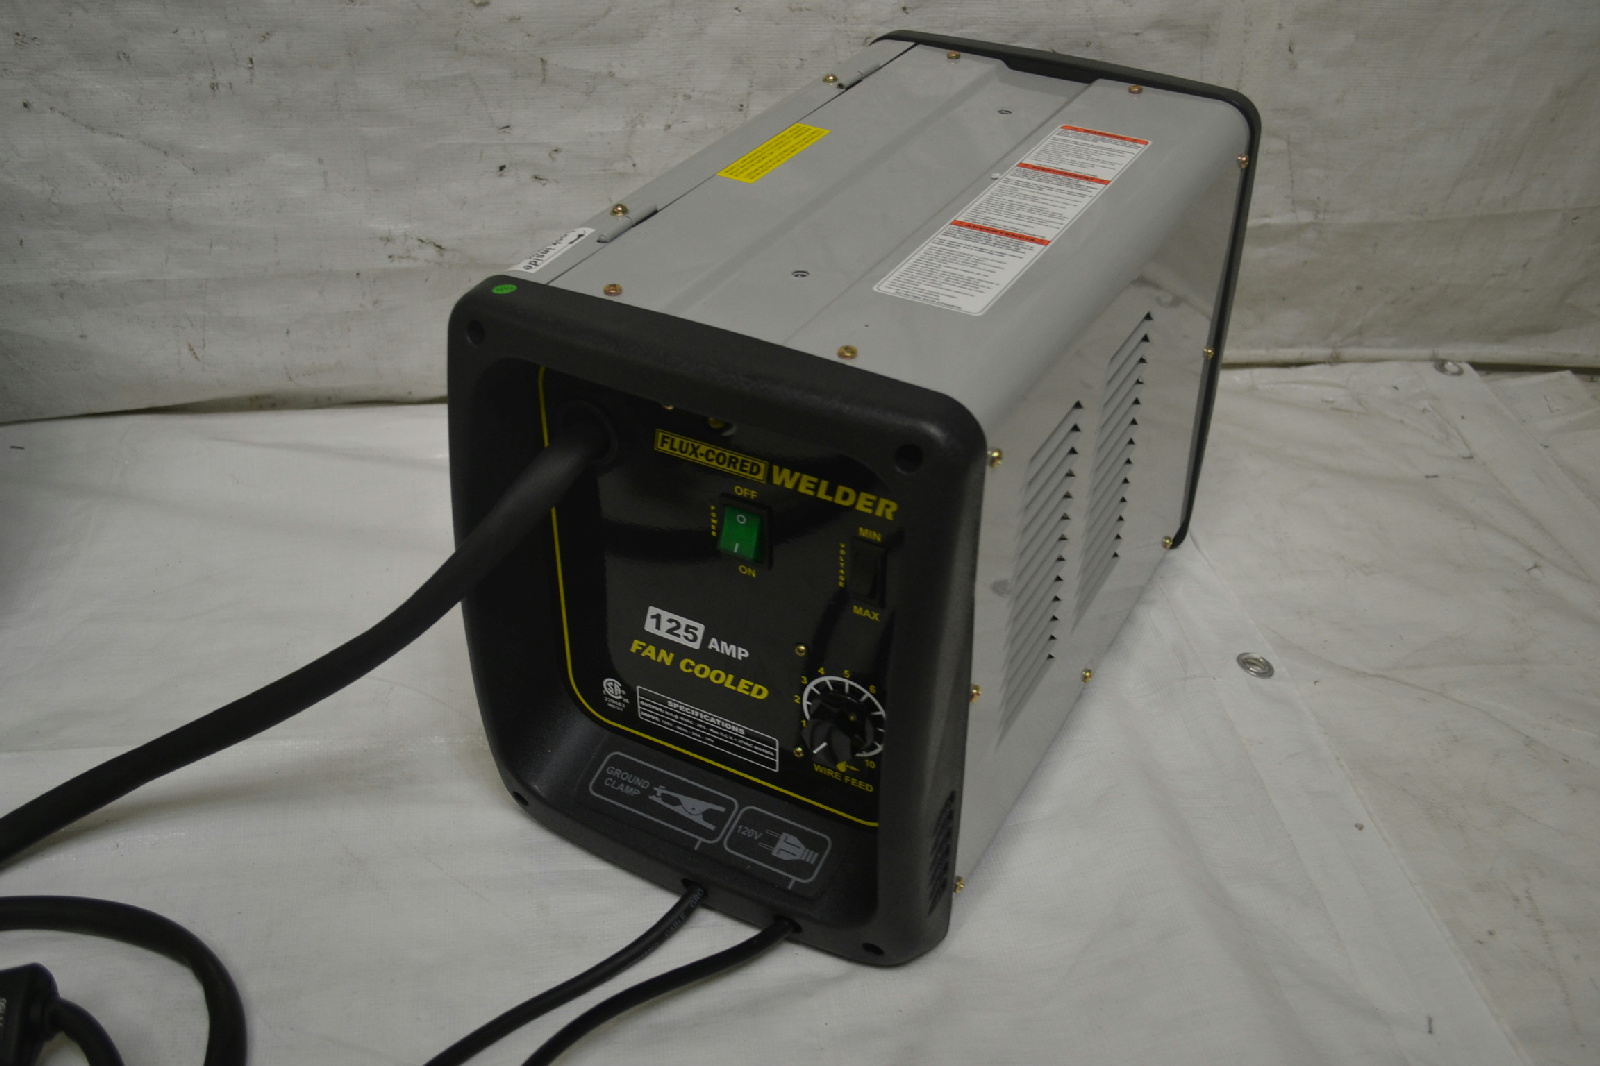 Pro series mmig125 125 amp fluxcore welder kit black ebay for Wire size for 125 amp service